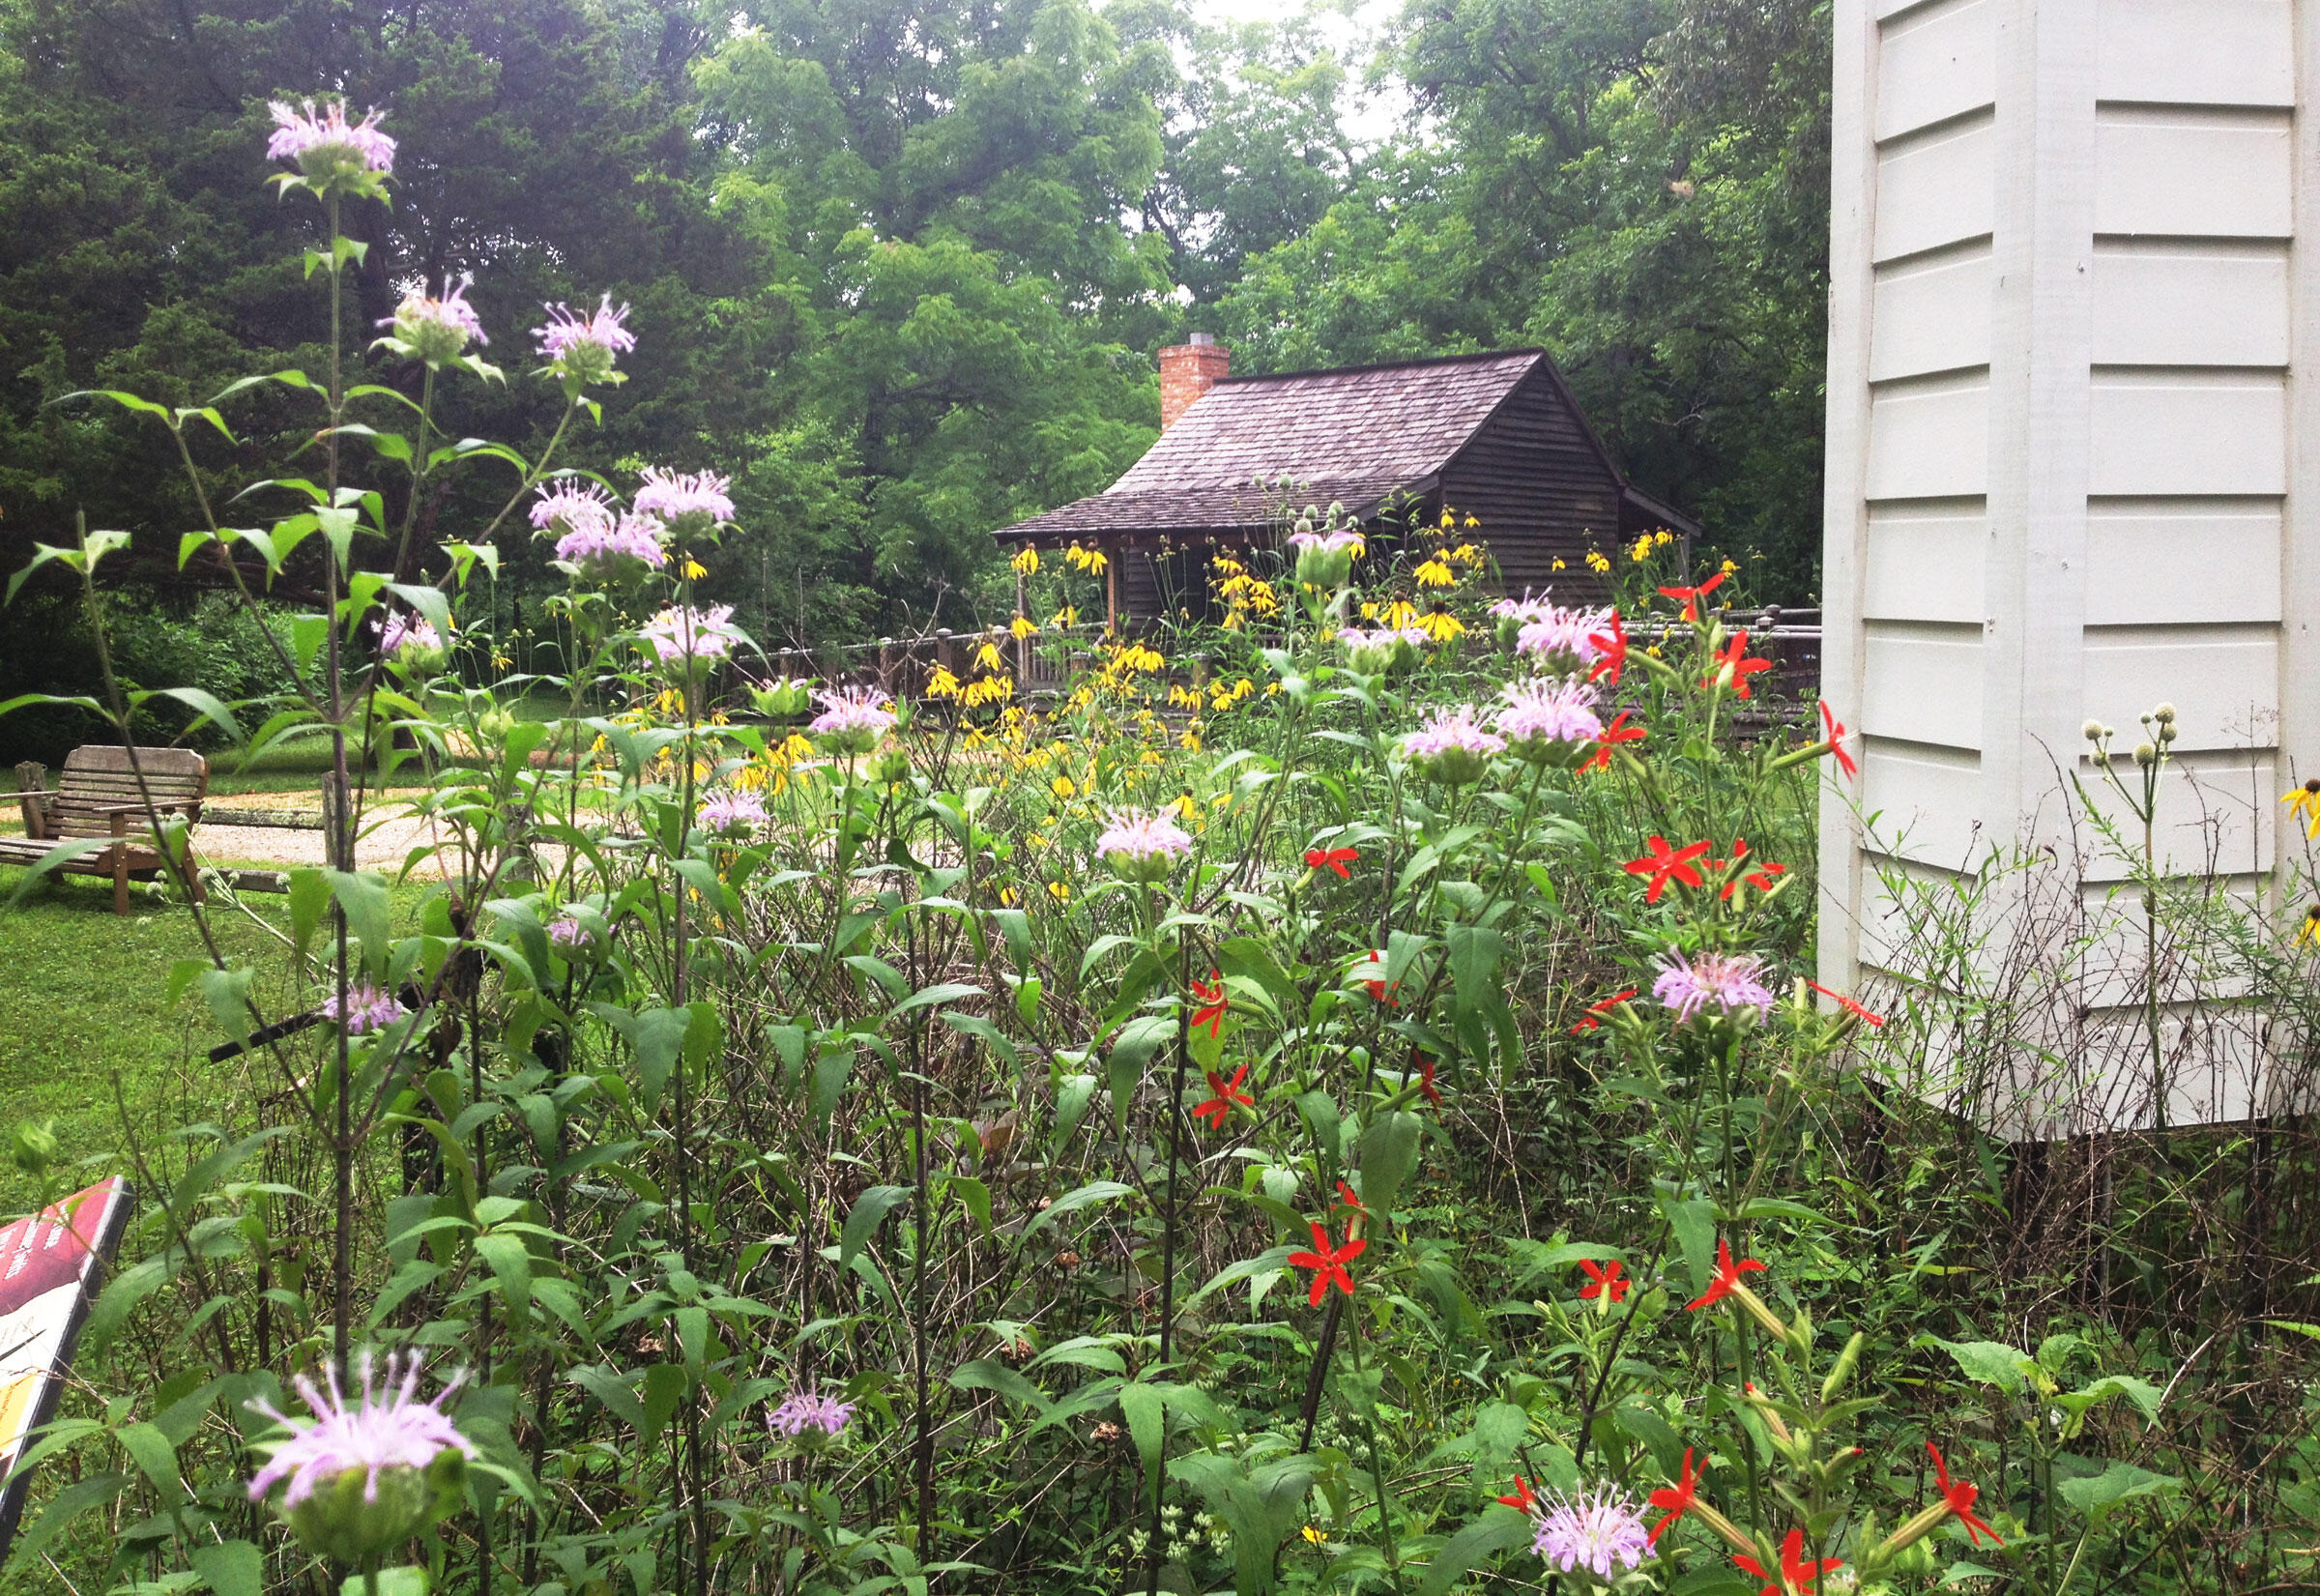 """A native garden at the Strawberry Plains Audubon Center in Mississippi. Mitch Robinson/<a href=""""//strawberryplains.audubon.org/"""">Strawberry Plains Audubon Center</a>"""